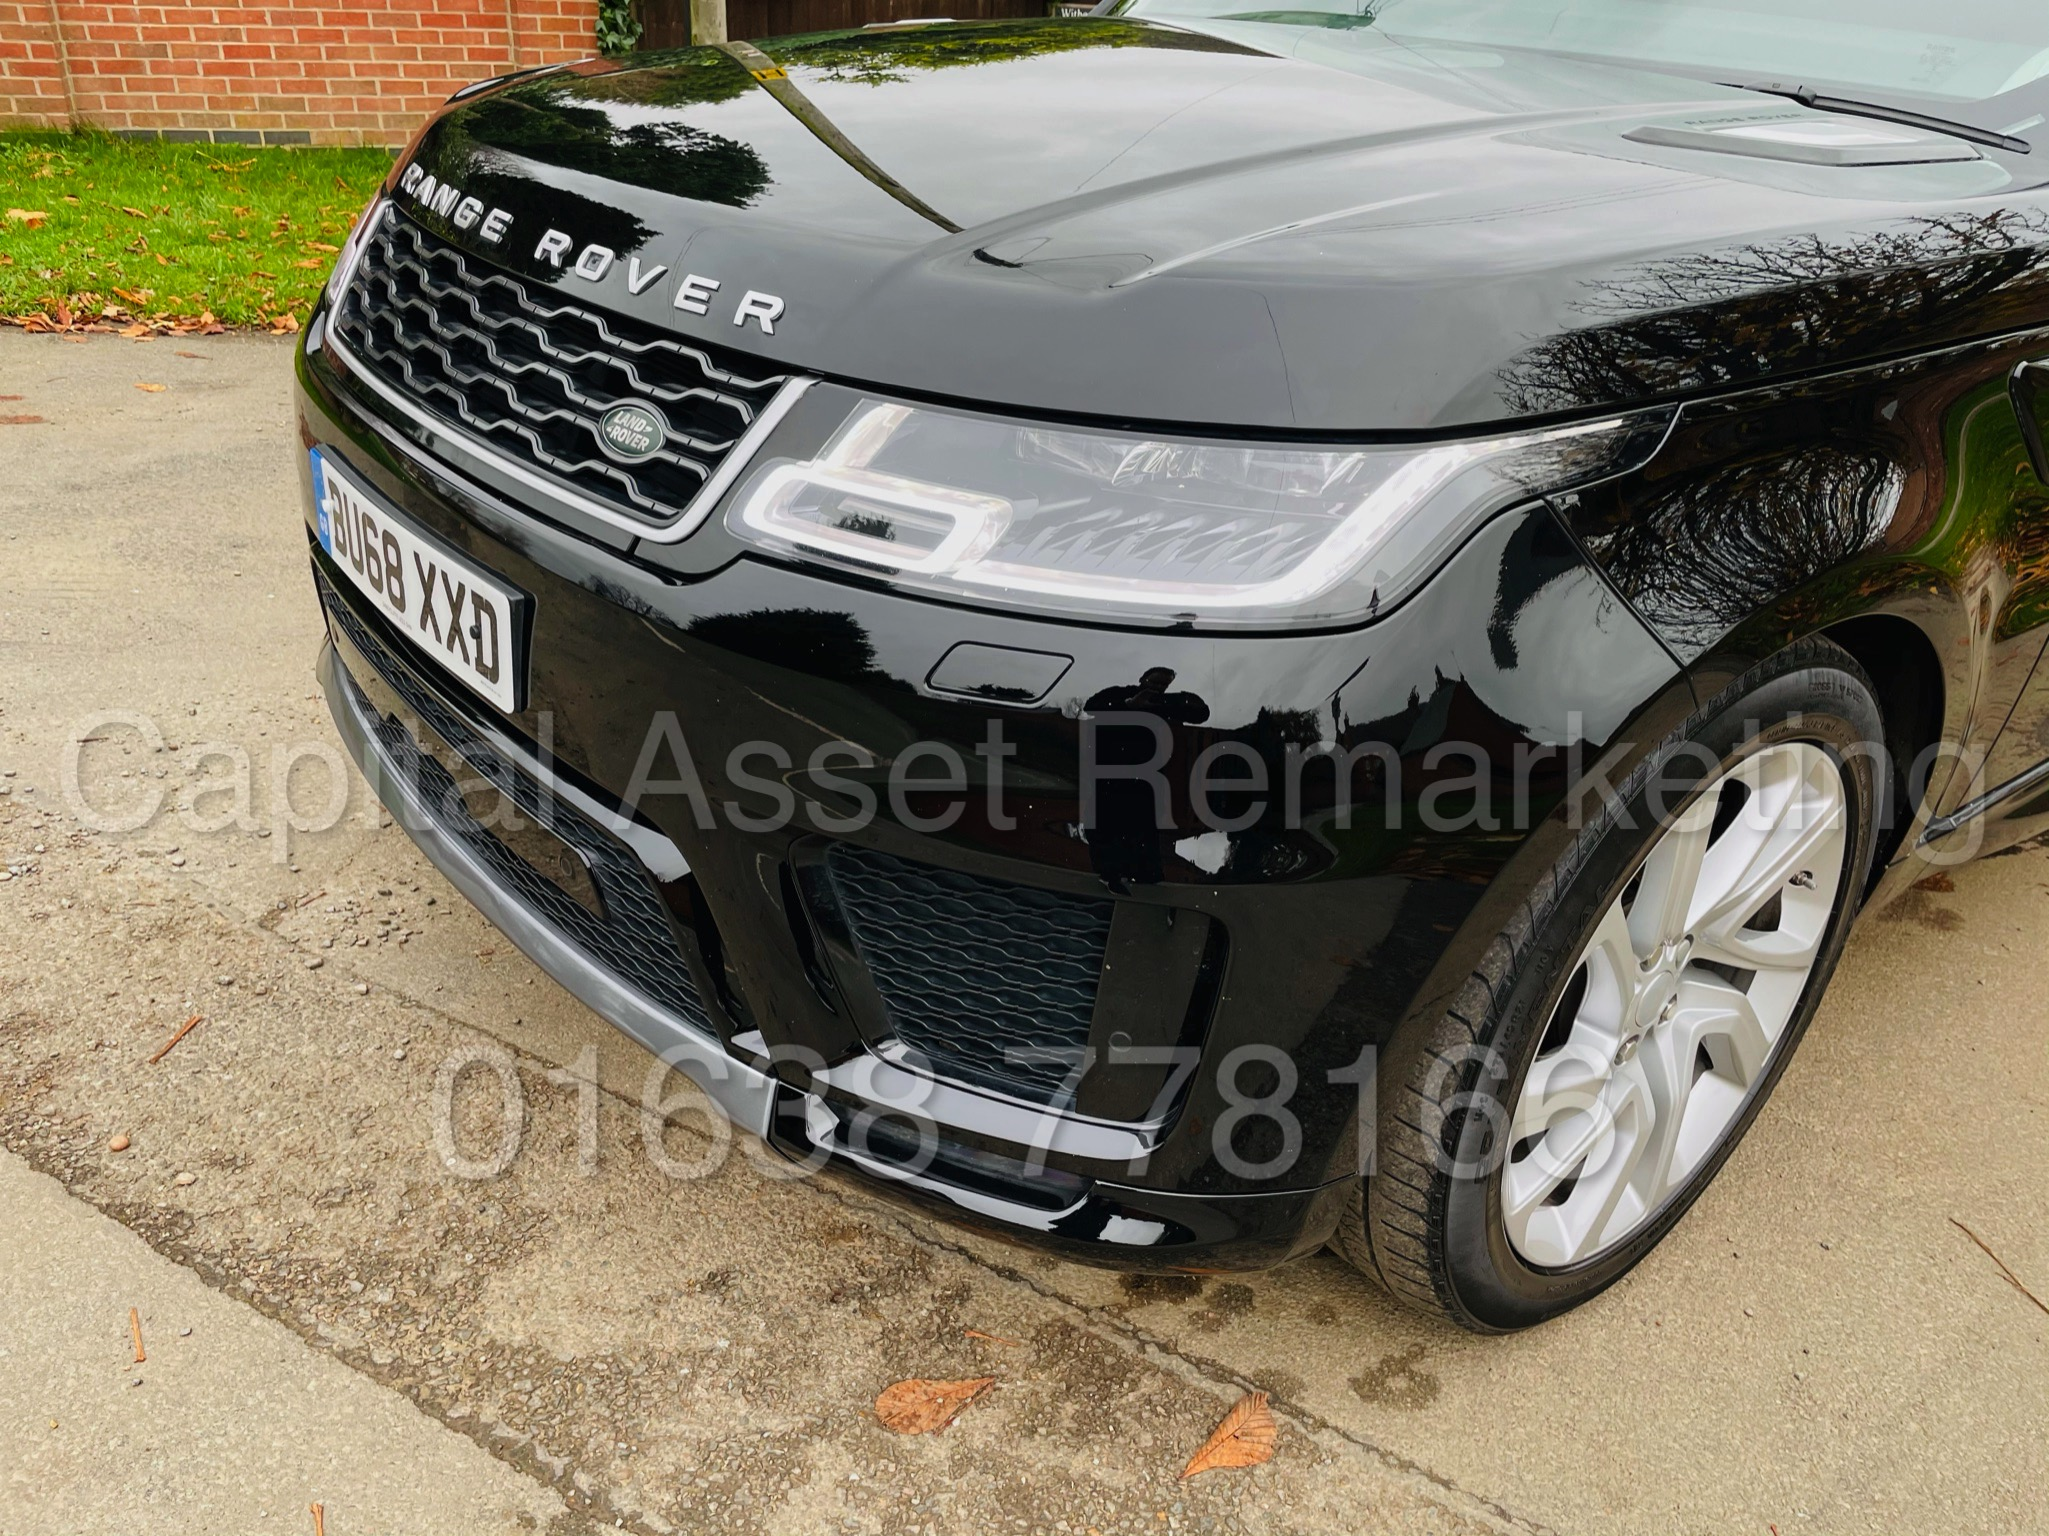 RANGE ROVER SPORT *HSE EDITION* SUV (2019 MODEL) '3.0 SDV6 - 306 BHP - 8 SPEED AUTO' *FULLY LOADED* - Image 16 of 56